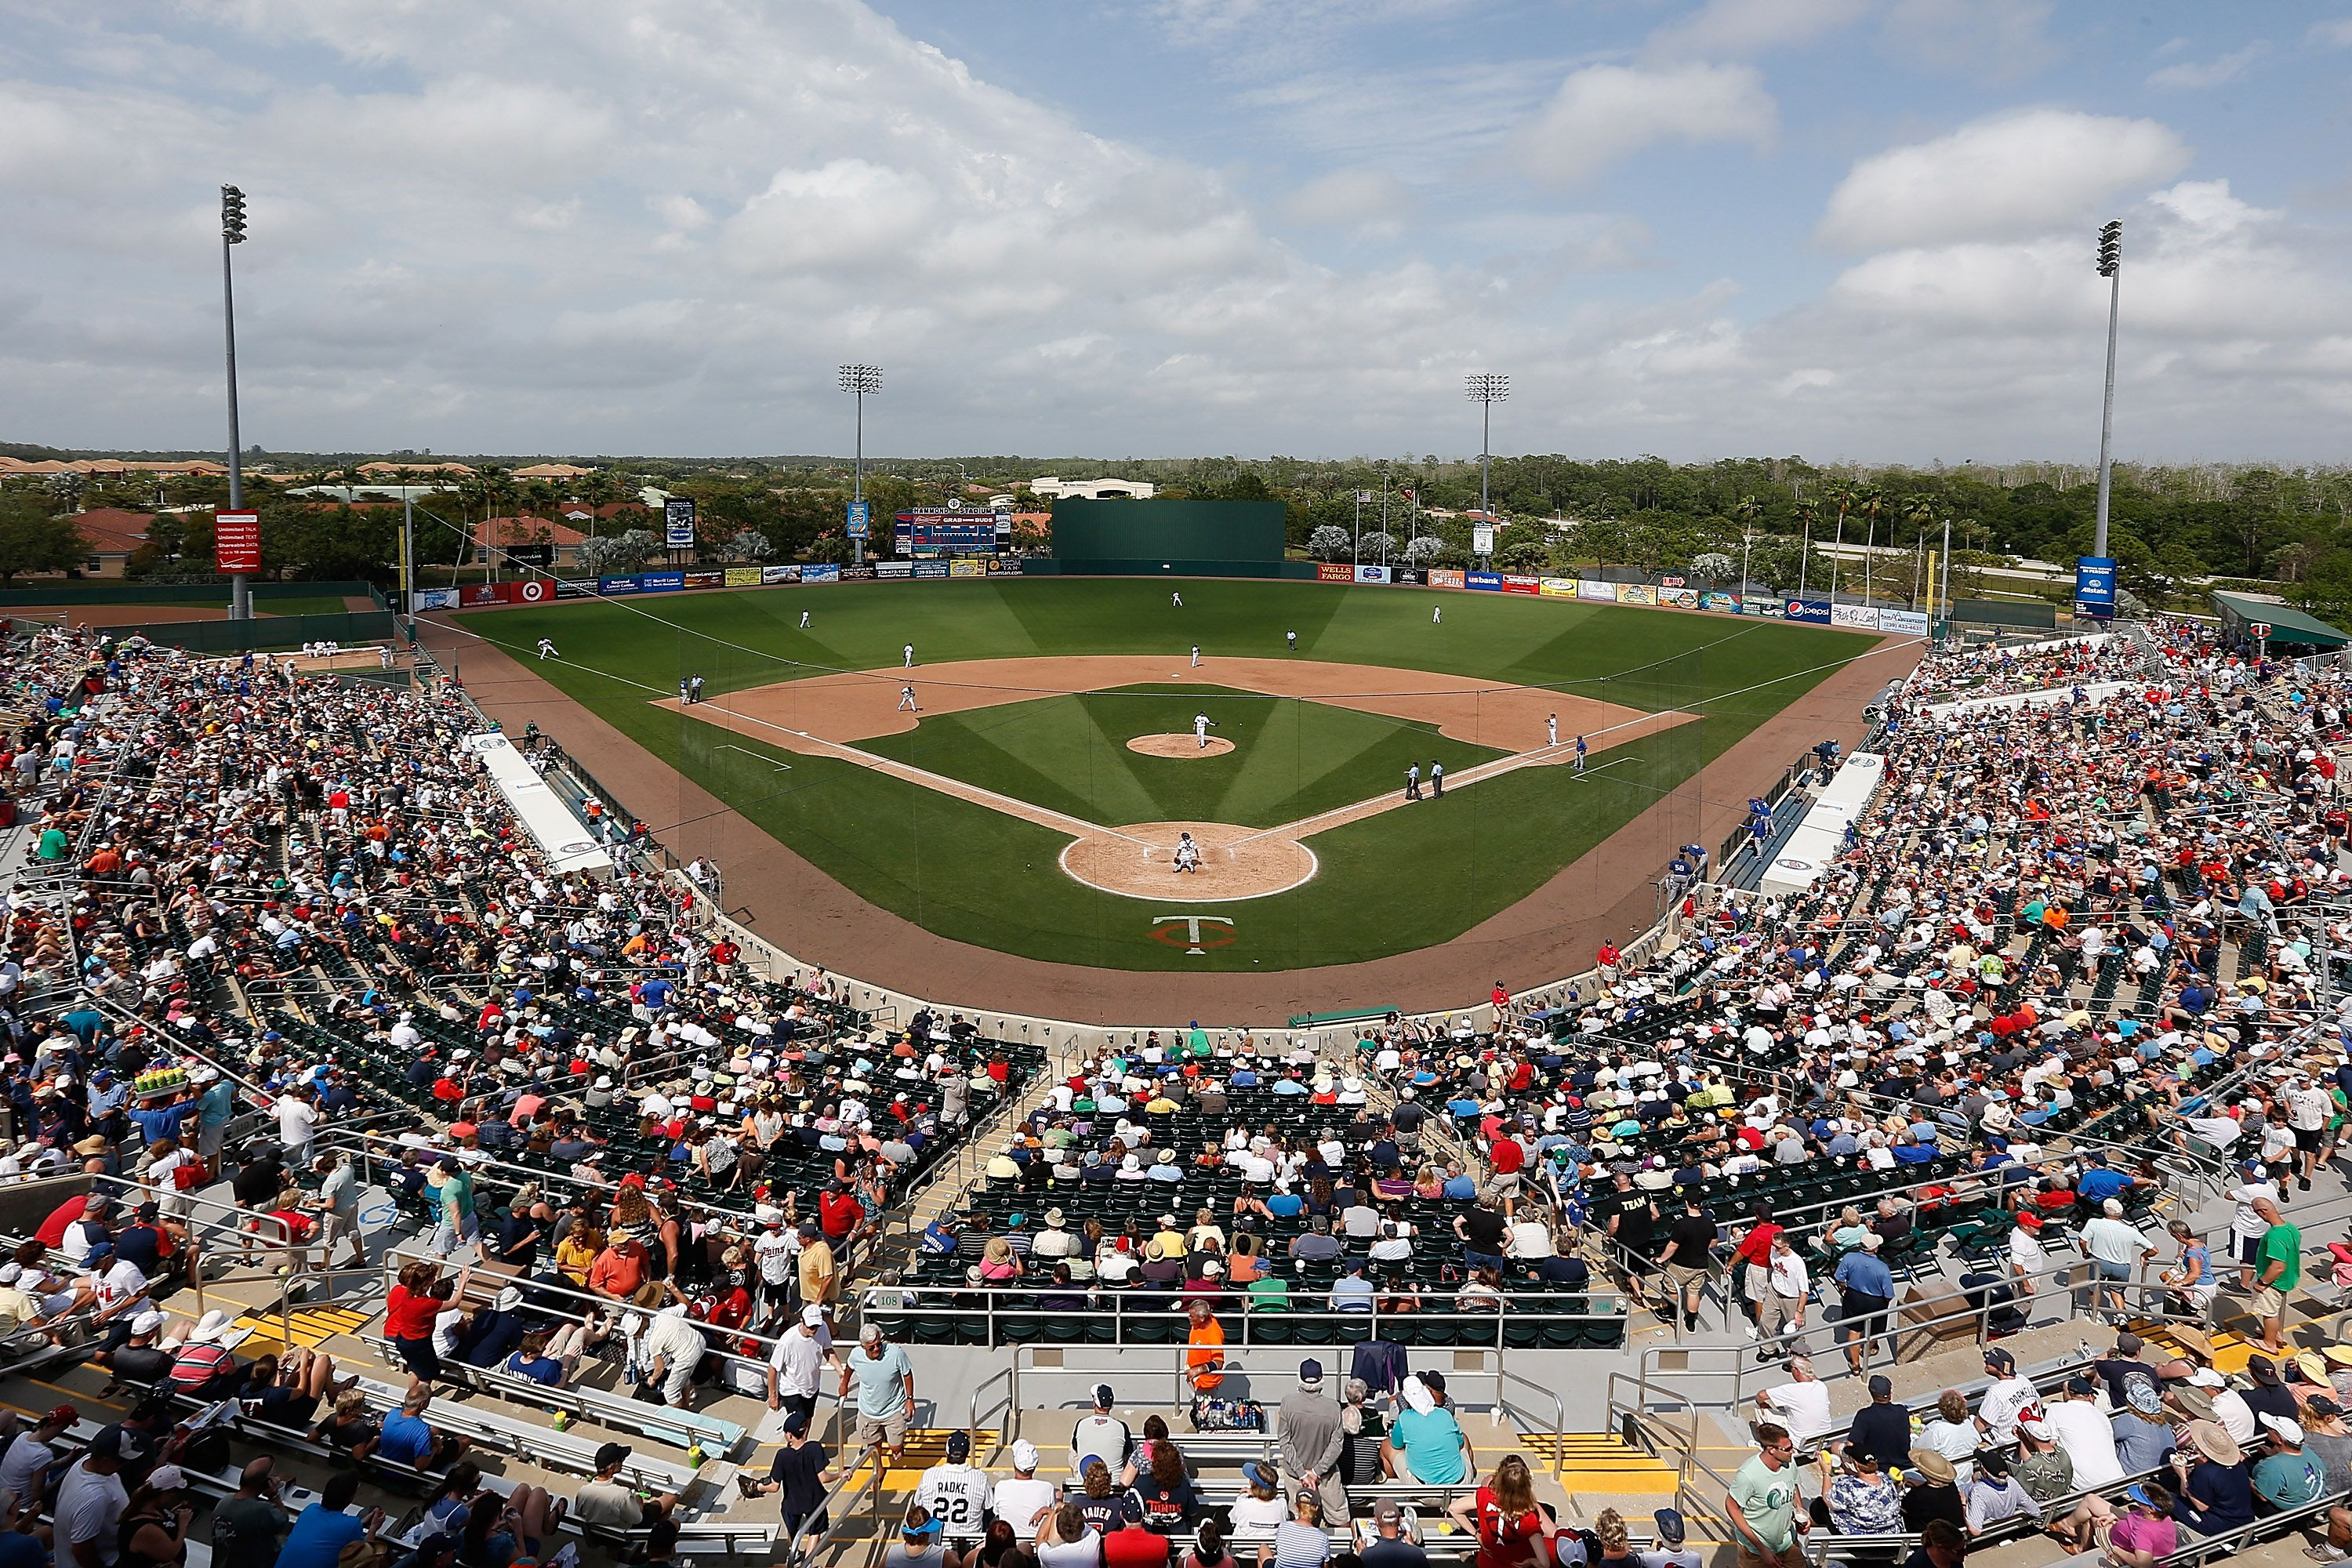 A general view of Hammond Stadium during a Grapefruit League Spring Training Game